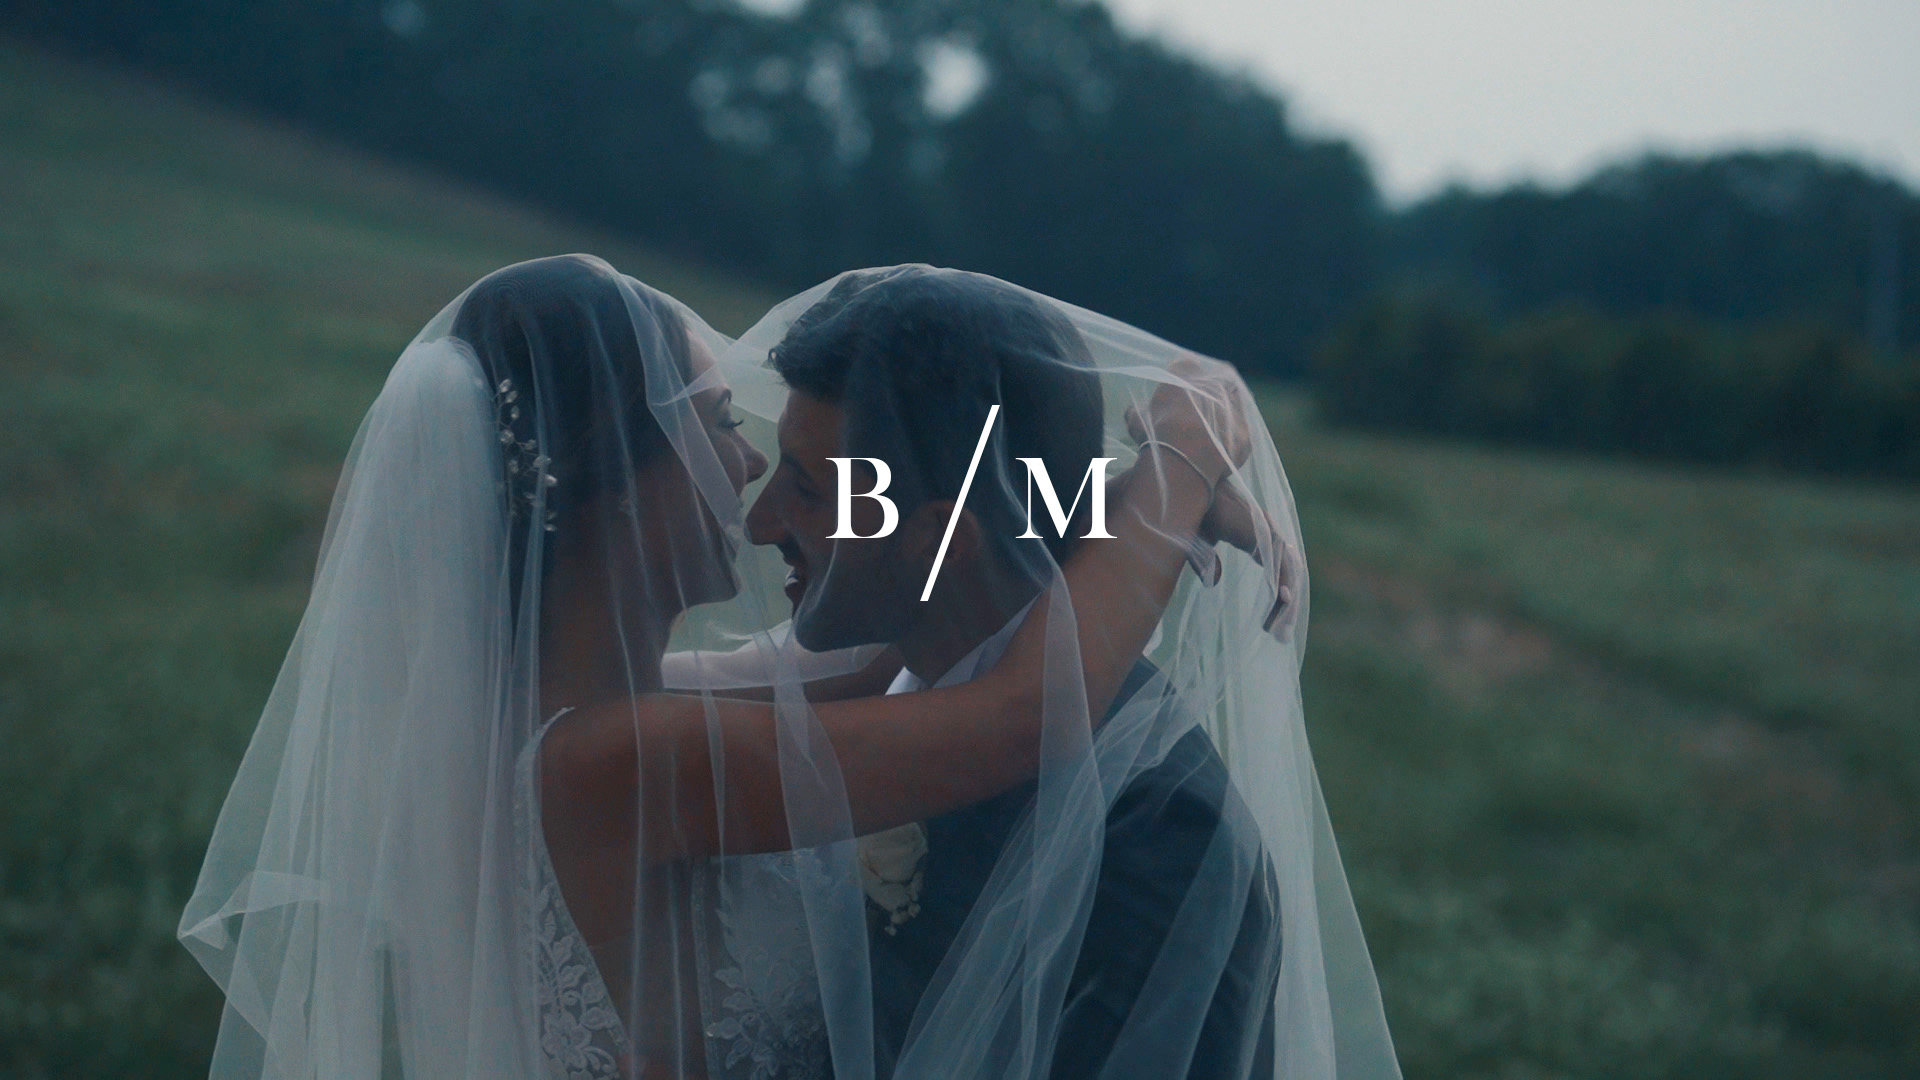 Bianca + Marco | Fossombrone, Italy | a venue